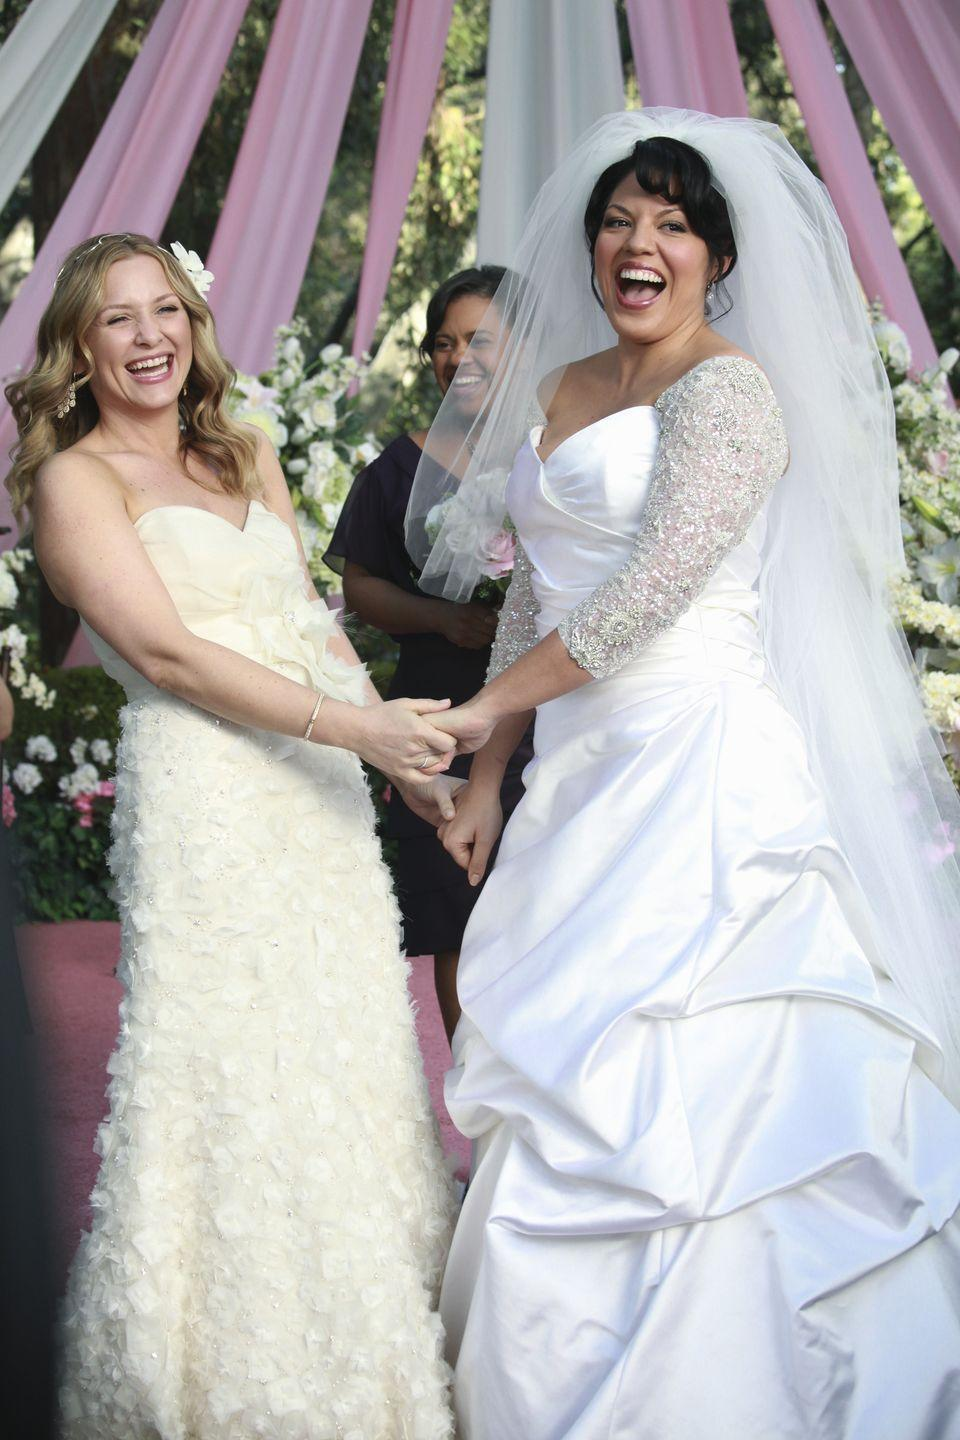 <p>There were a lot of obstacles in the way of Callie and Arizona's wedding, from Callie's parents disapproving to their nearly fatal accident, but both brides looked stunning in their own unique wedding dresses. Arizona wore an off-white gown with a sweetheart neck and appliquéd skirt while Callie wore a satin princess gown with embellished sleeves. </p>